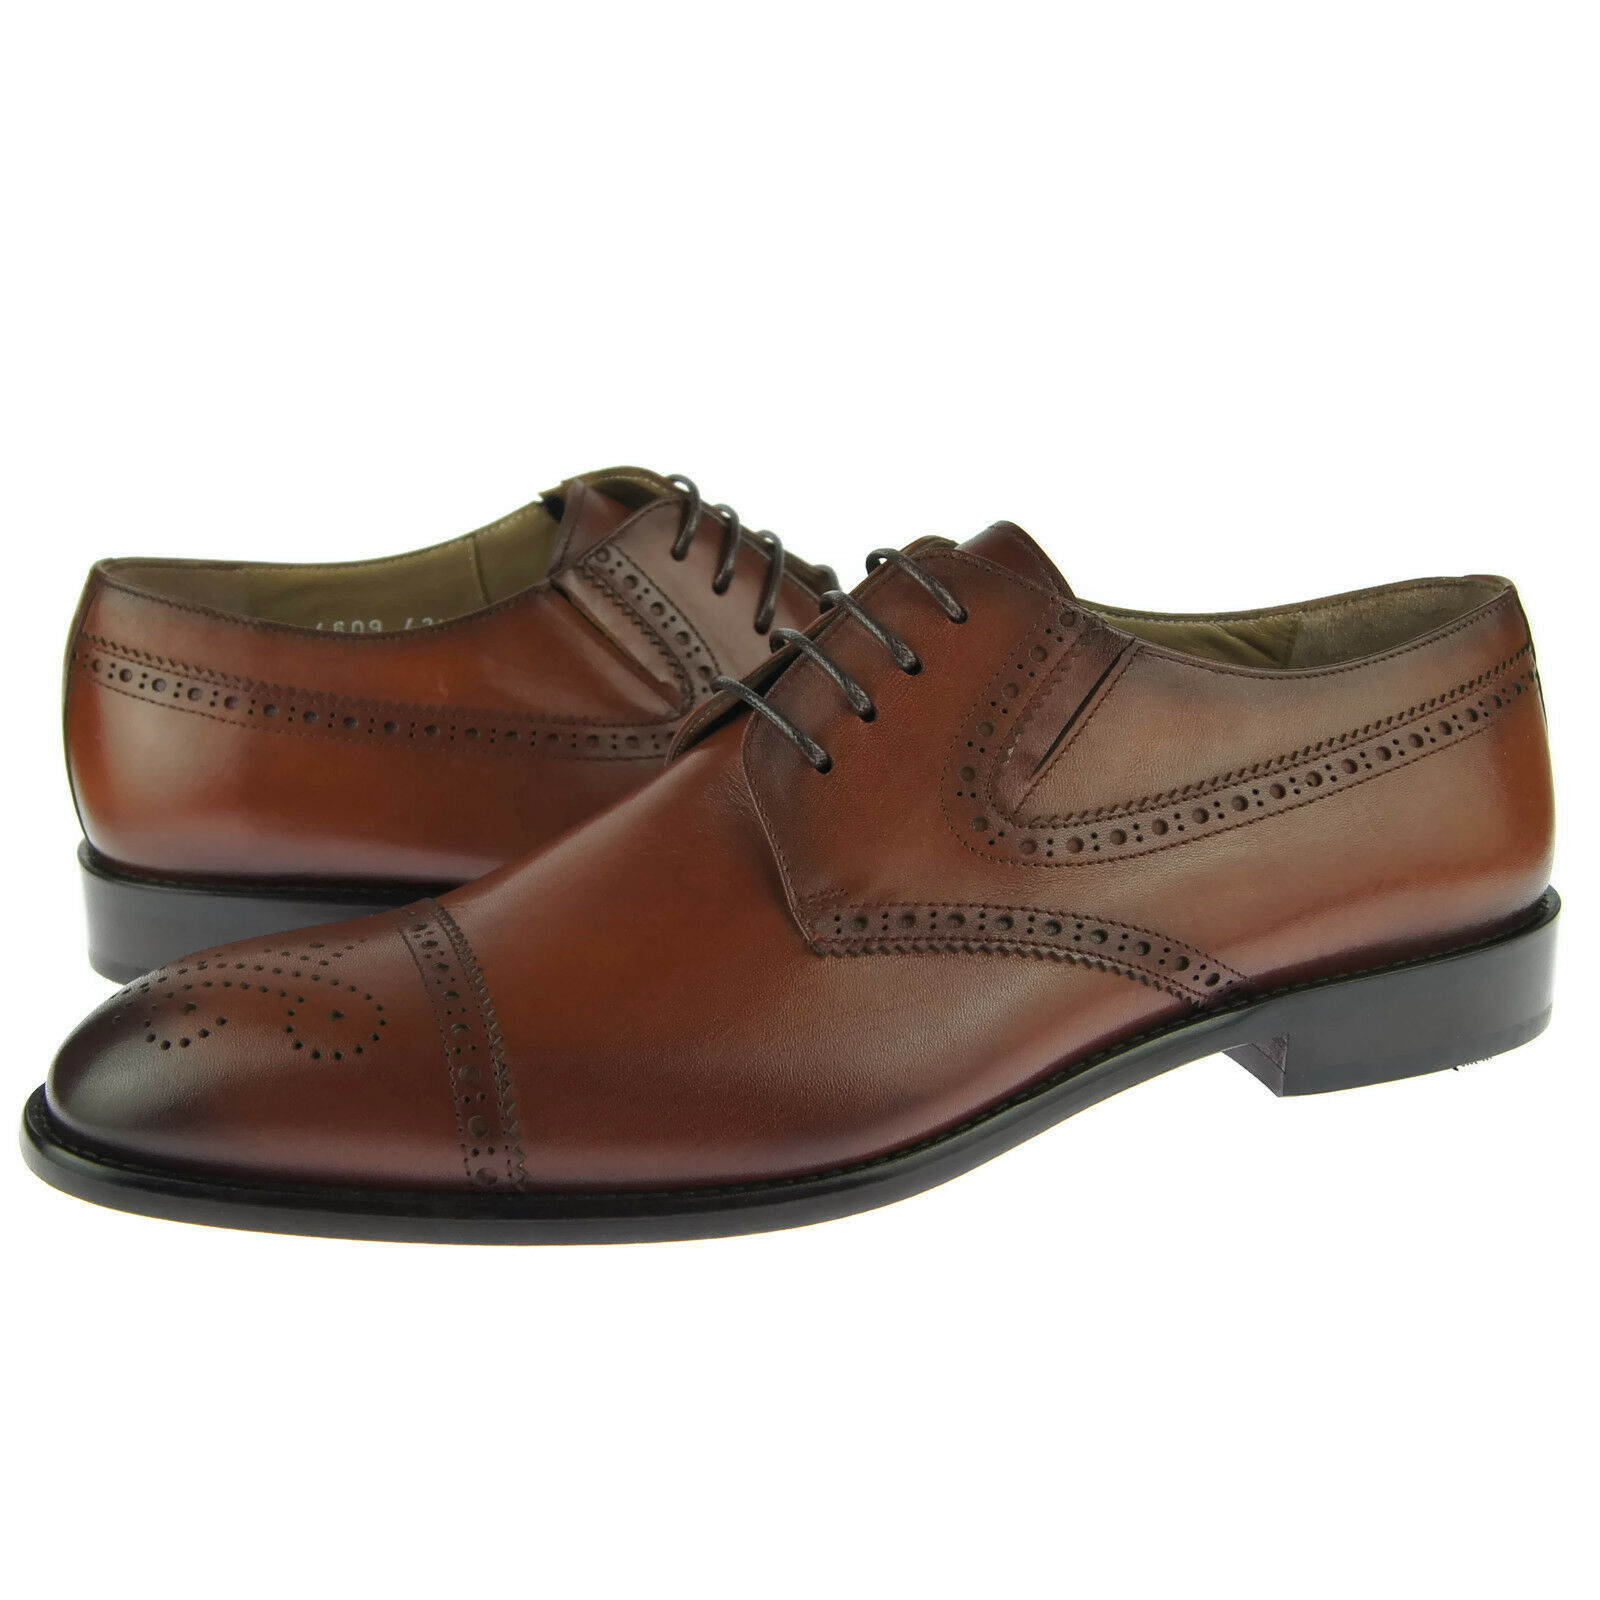 Corrente 4609 Cap Toe Derby, Men's Dress Leather shoes, Tobacco